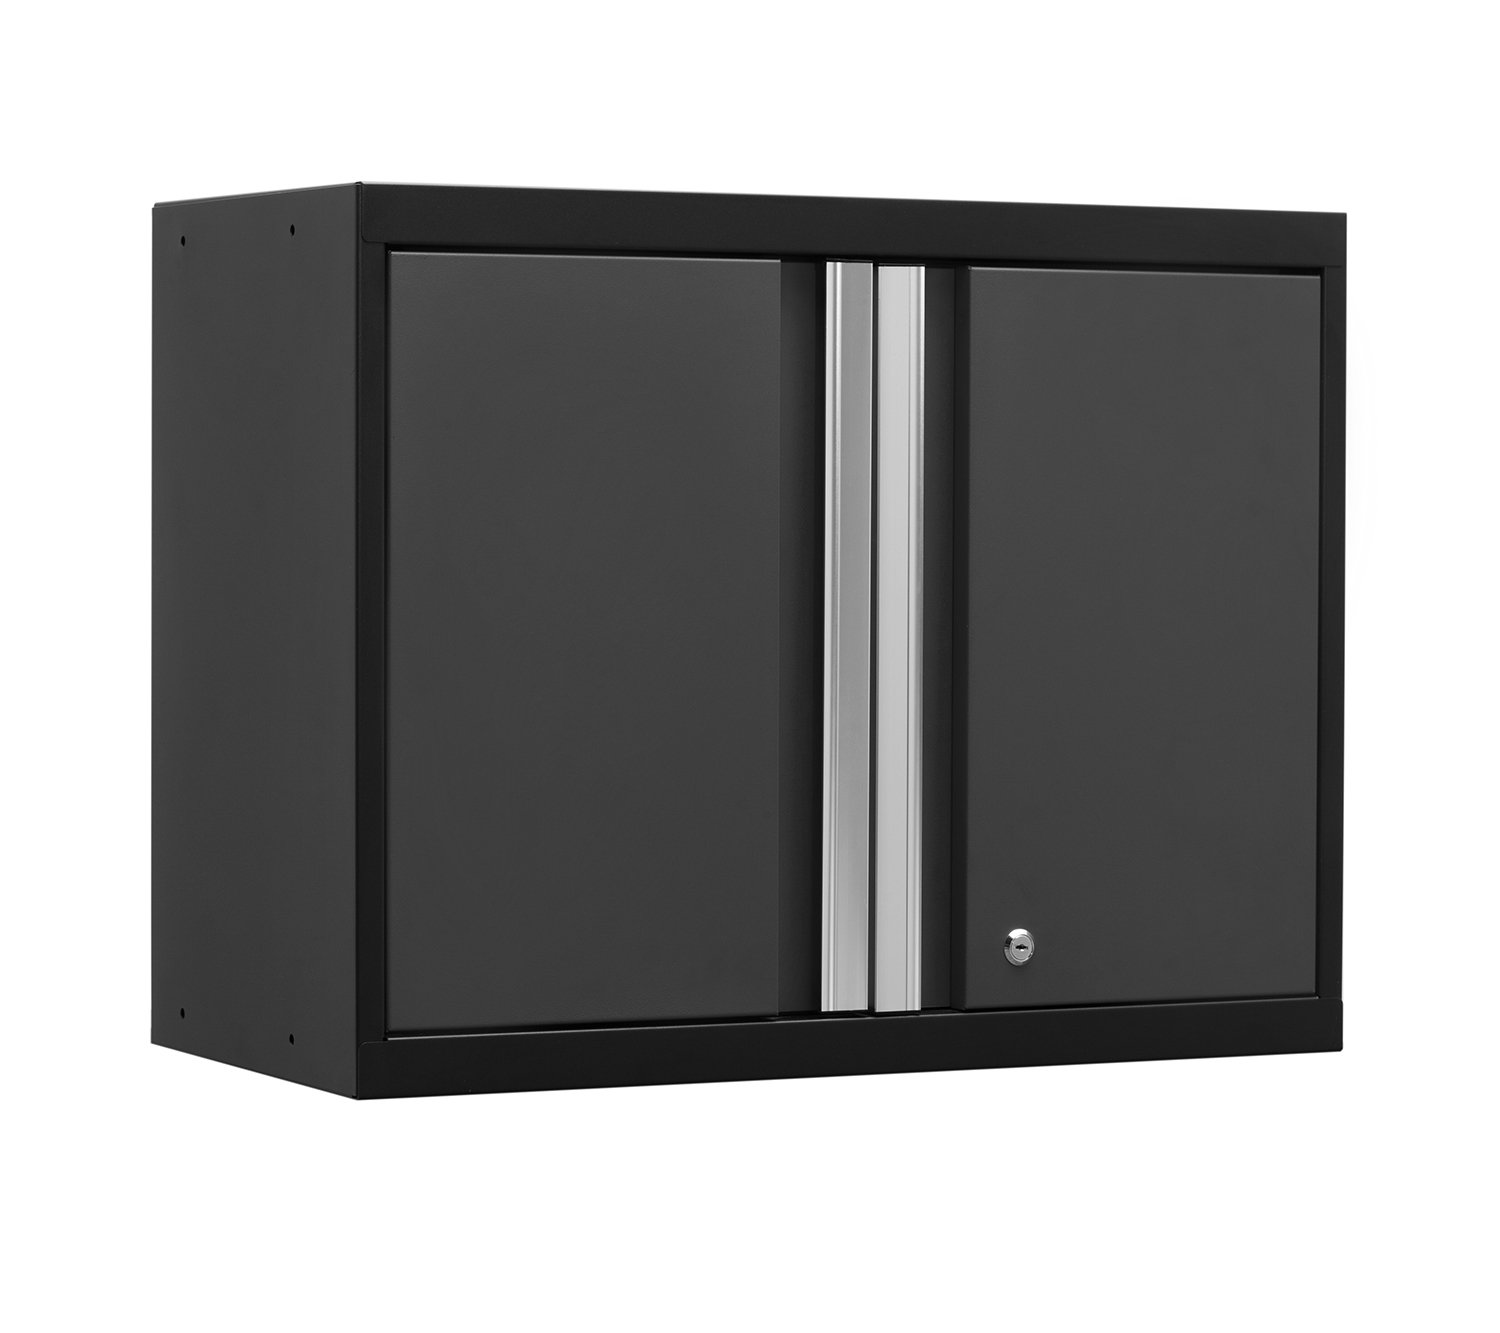 NewAge Products 52000 Pro 3.0 Series 18-Gauge Metal Wall Cabinet, Gray